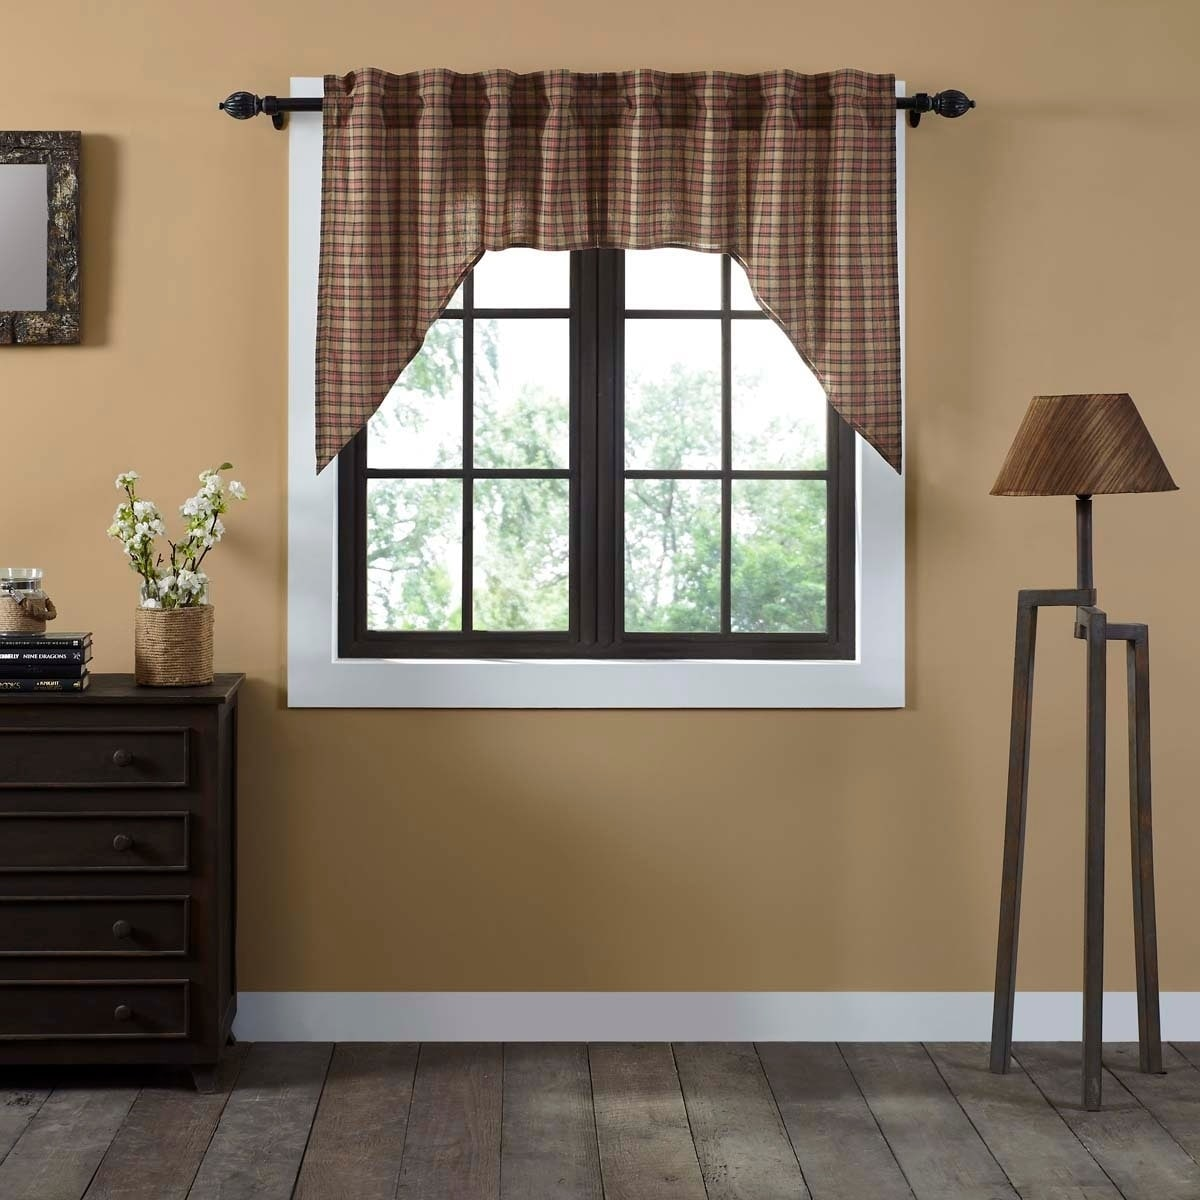 Tan Primitive Kitchen Curtains Vhc Crosswoods Swag Pair Rod Pocket Cotton Plaid Swag 36x36x16 Swag 36x36x16 Overstock 19486931